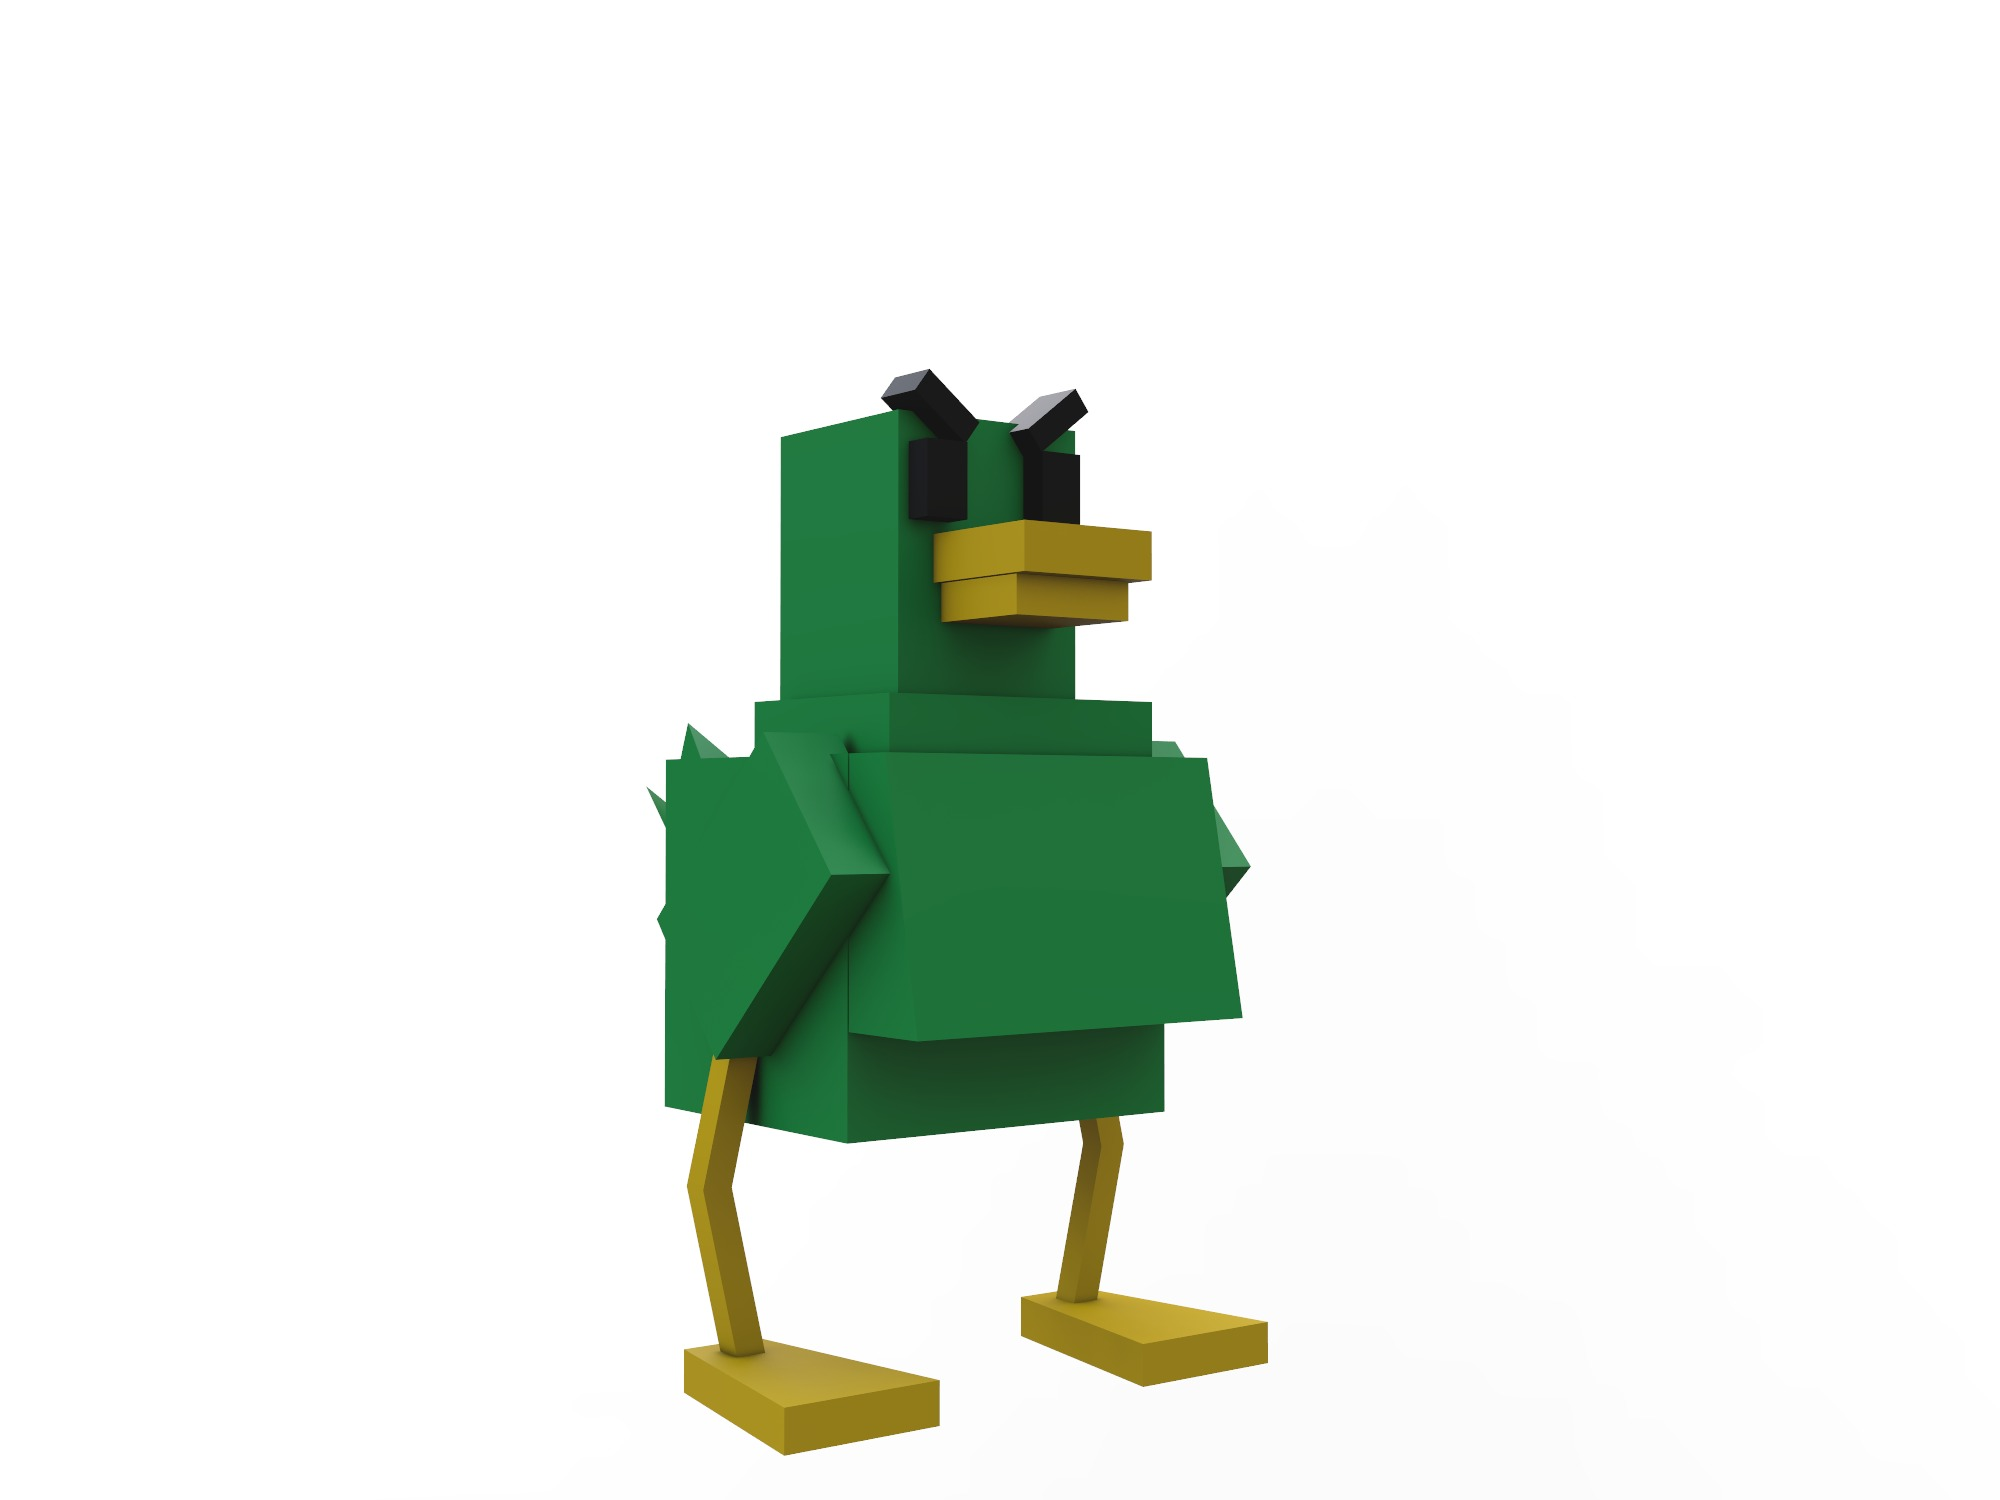 Bossy Duck - 3D design by starlion365 on Jul 17, 2018